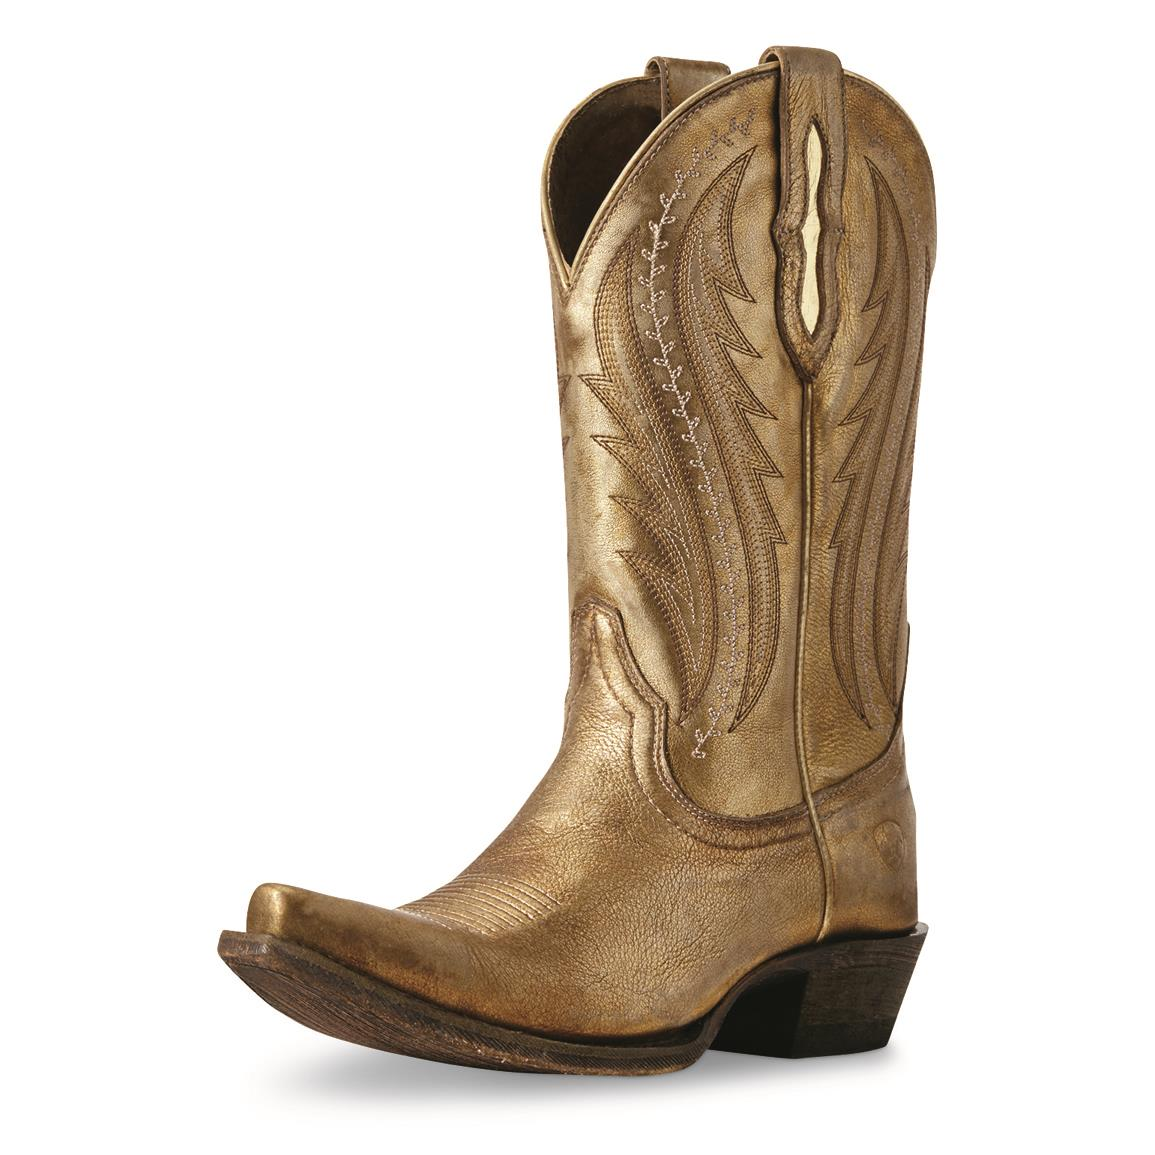 Ariat Women's Tailgate Western Boots, Distressed Gold